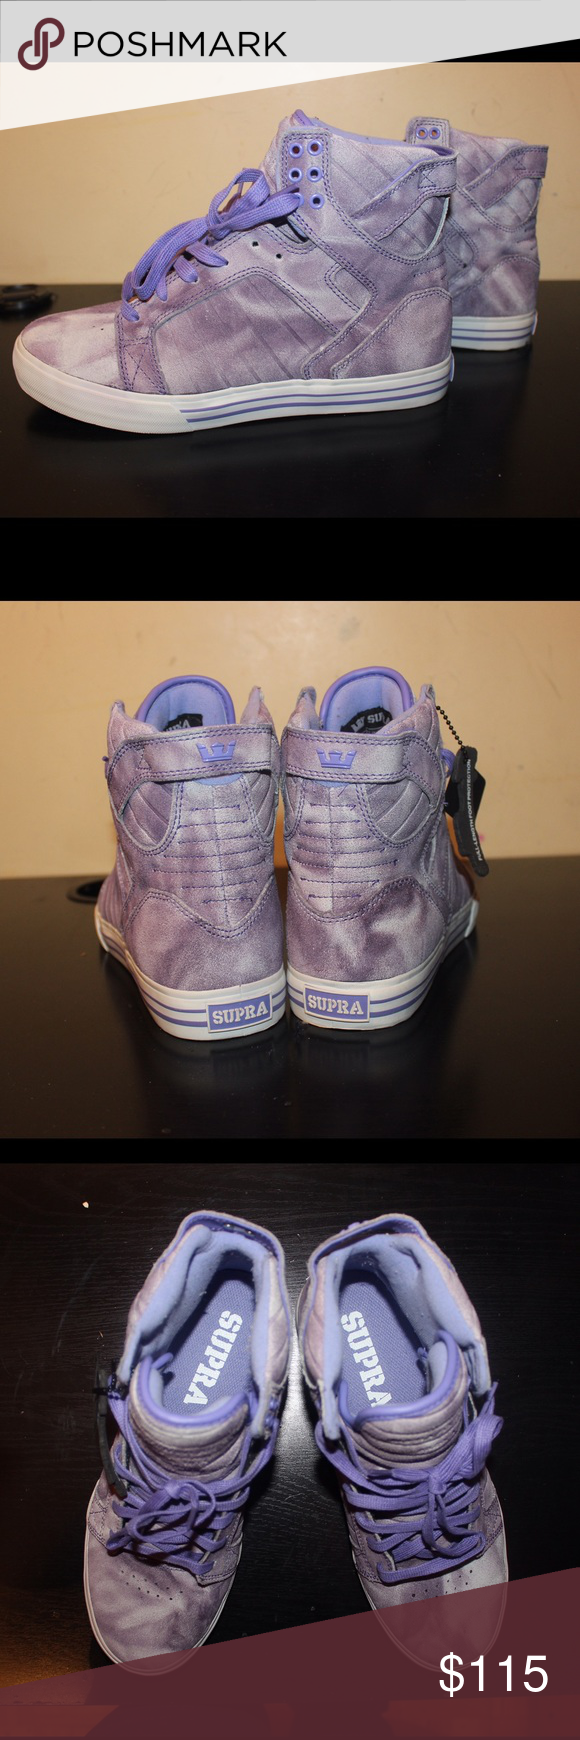 d5f6b744490d Supra skytop sneakers These are designed by Chad Muska